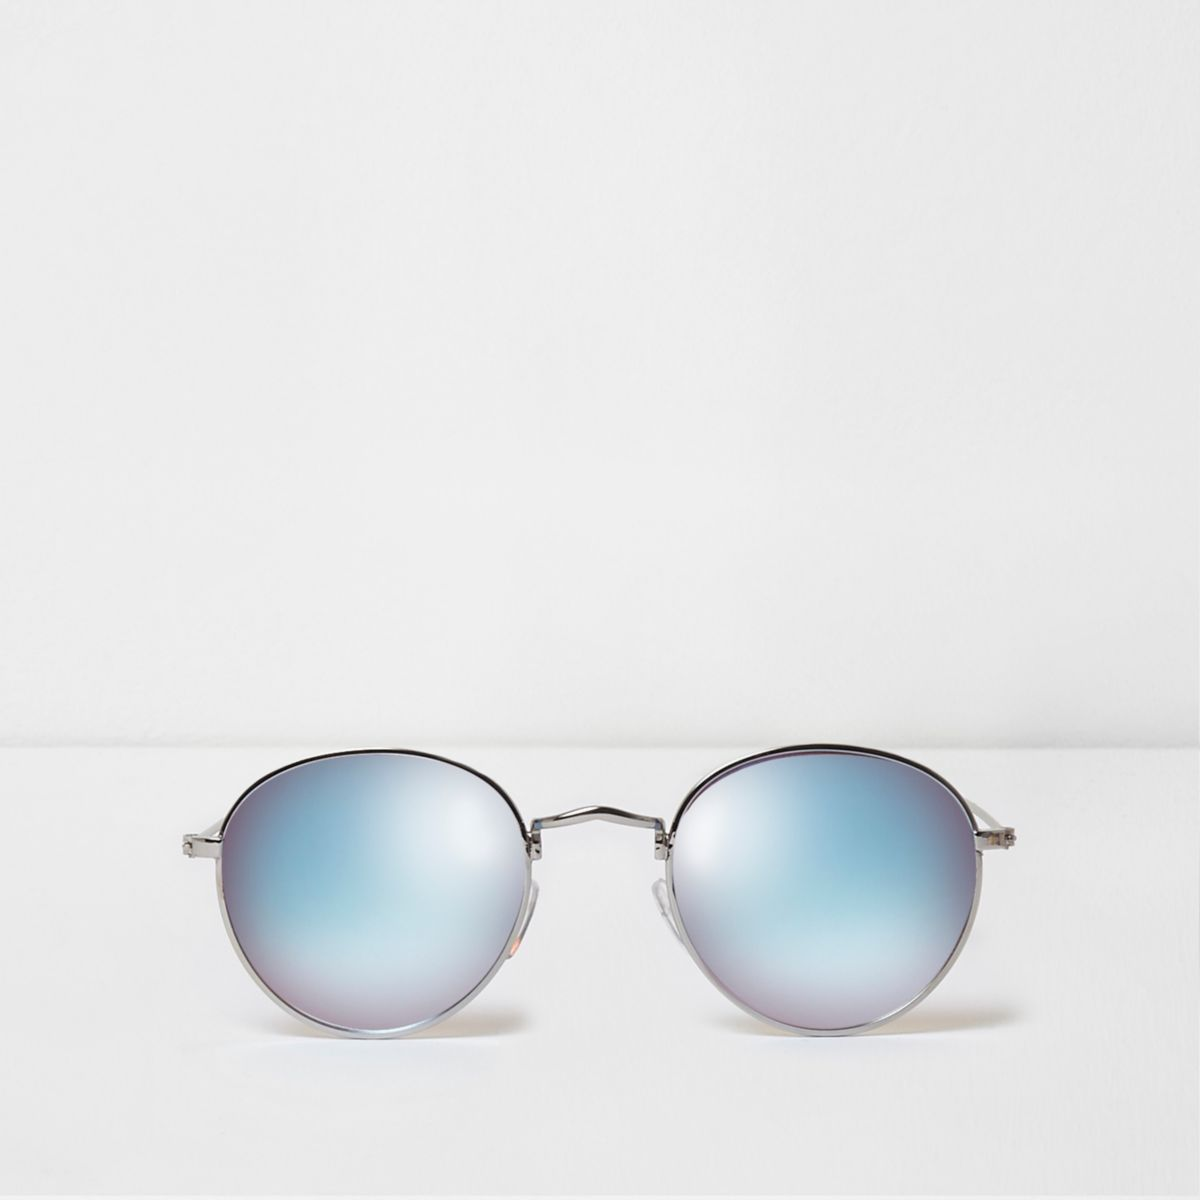 Silver tone blue mirror lenses sunglasses